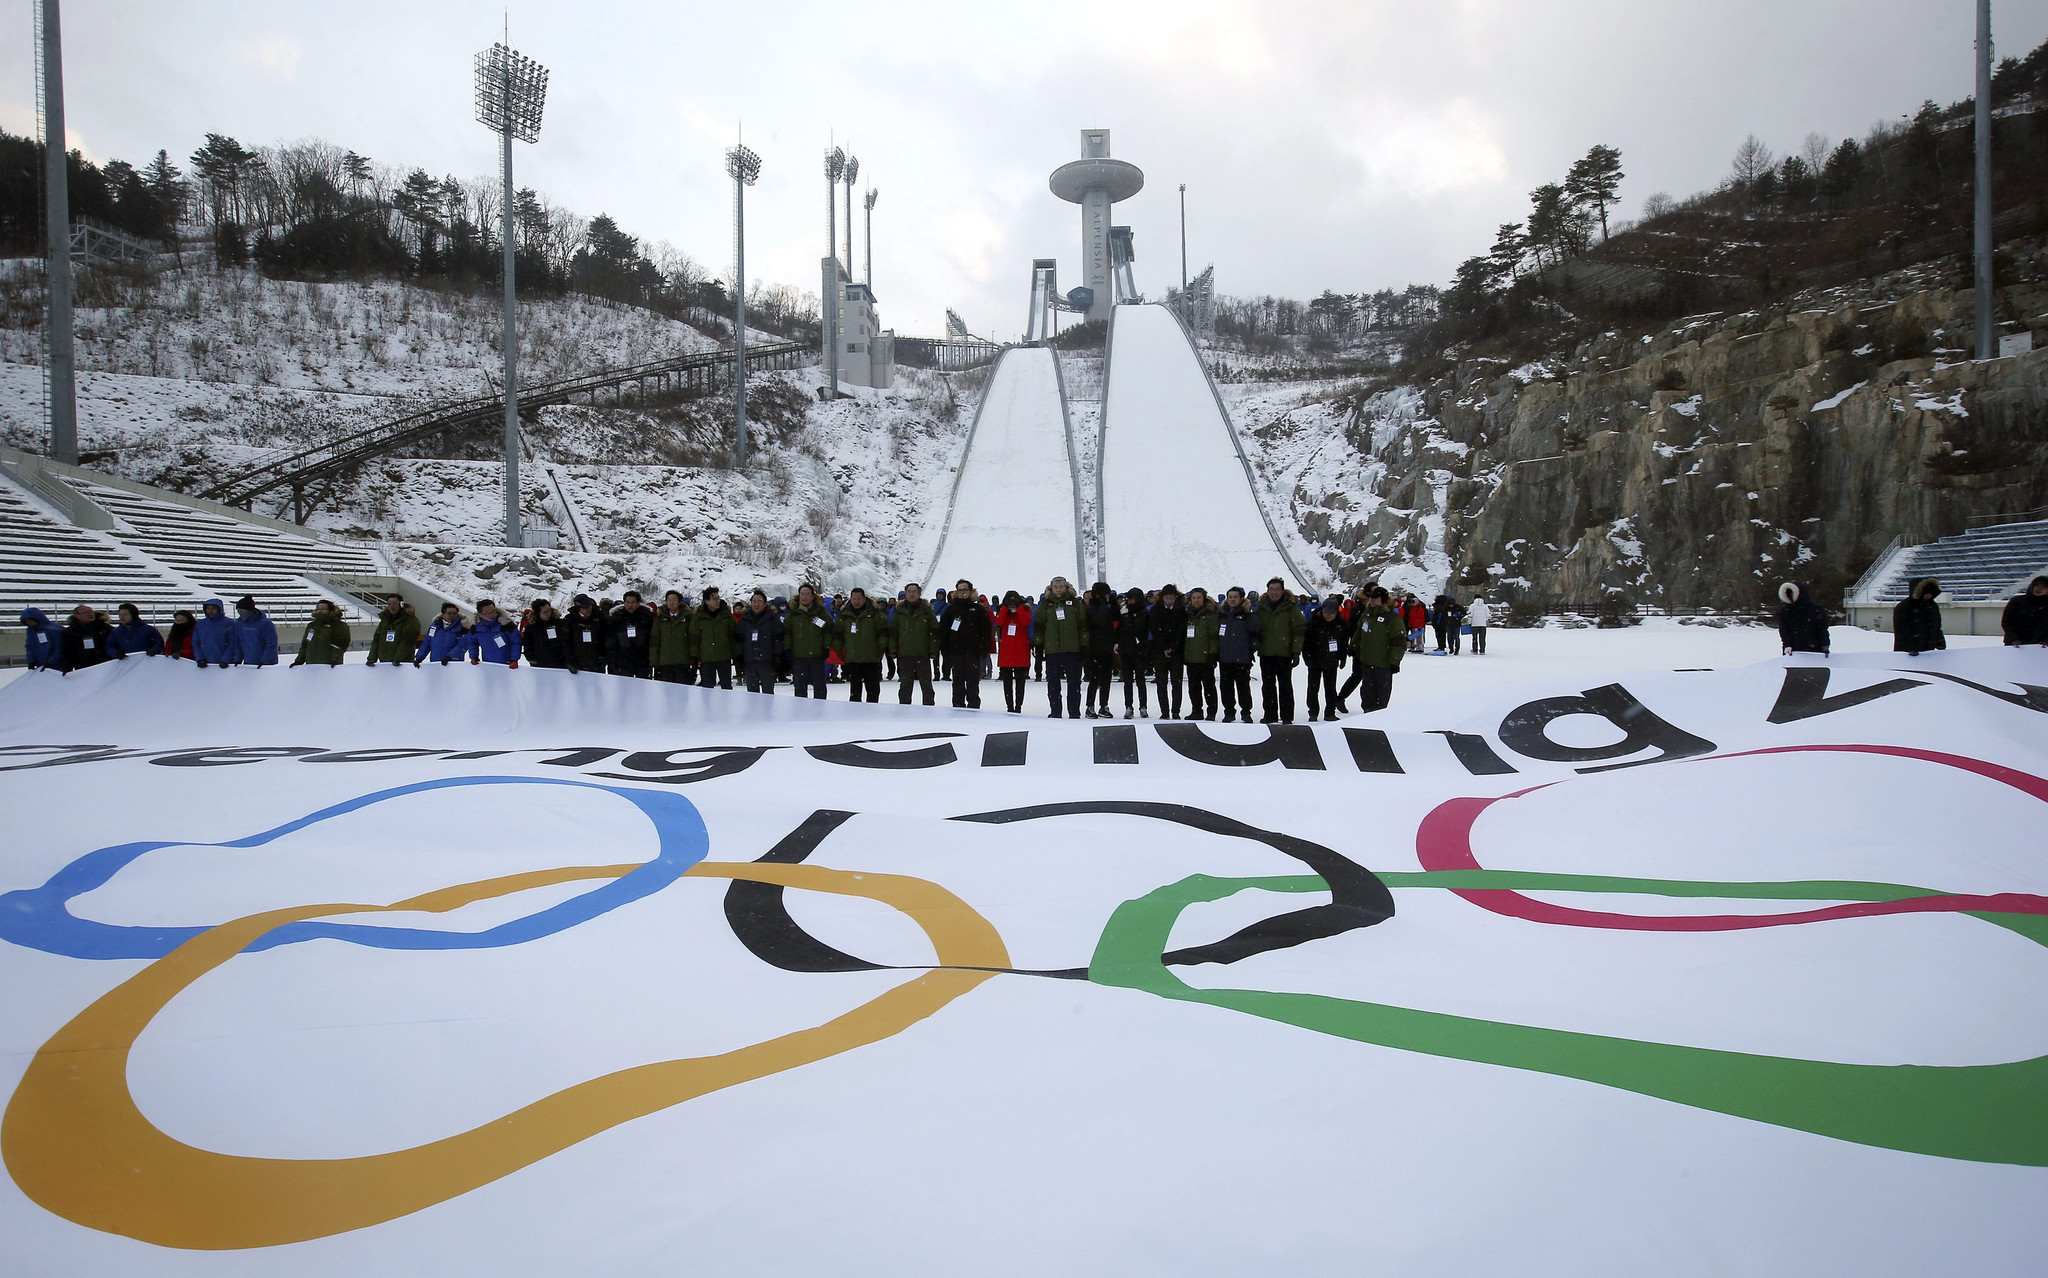 Olympic officials deliver mixed message on 2018 Winter Games